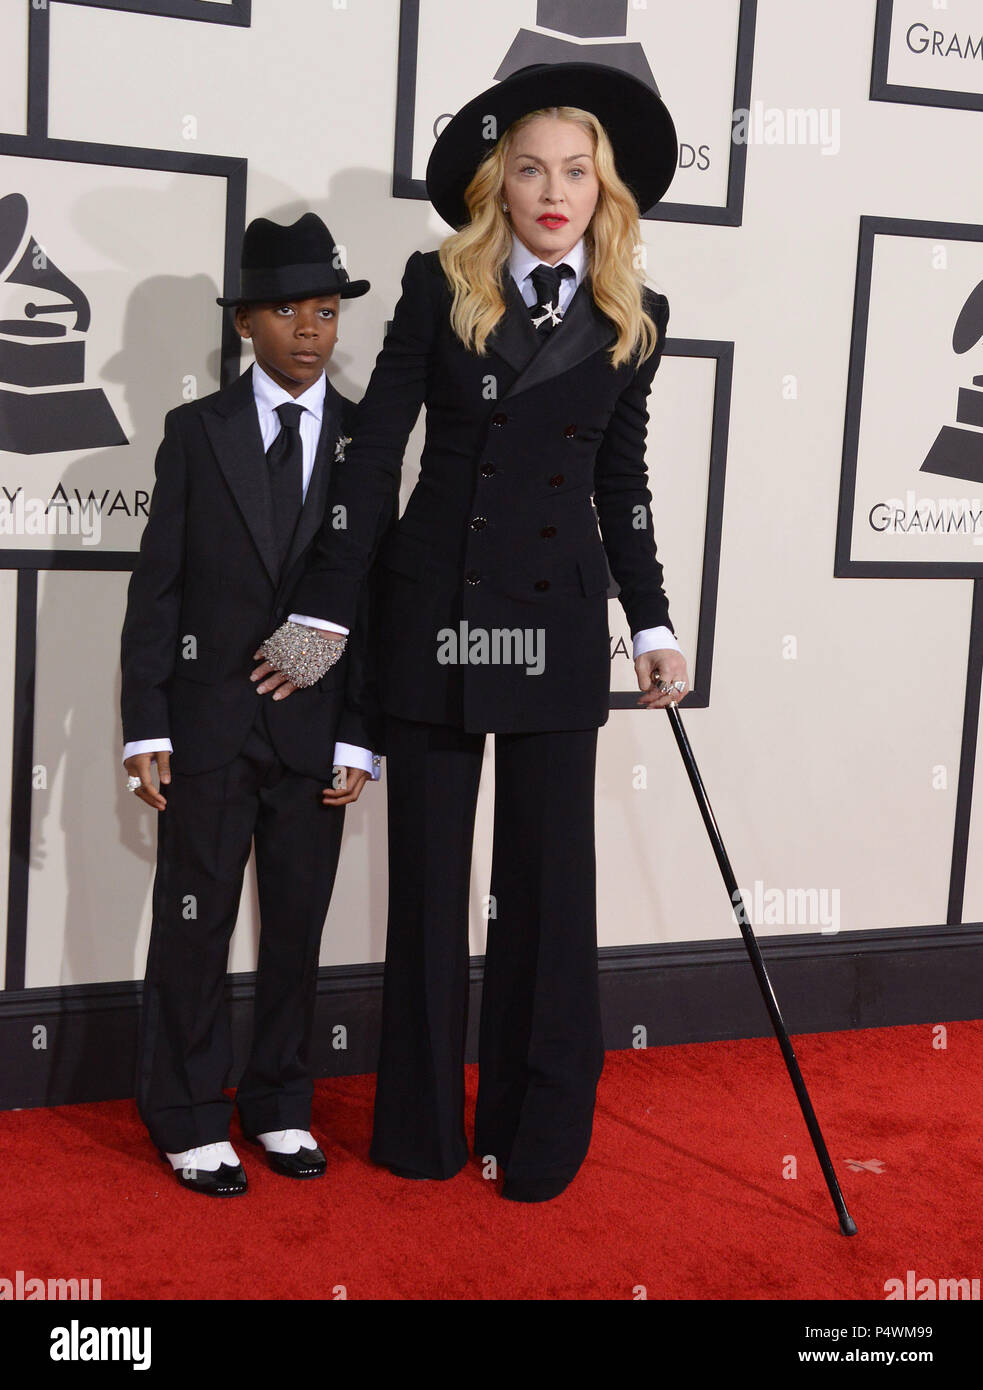 Madonna David Banda Mwale Ciccone Ritchie Arriving At The 56th Annual Grammy Awards 2014 At The Staple Center In Los Angeles Madonna David Banda Mwale Ciccone Ritchie 165 Red Carpet Event Vertical David has two brothers namely rocco john ritchie, an actor; https www alamy com madonna david banda mwale ciccone ritchie arriving at the 56th annual grammy awards 2014 at the staple center in los angelesmadonna david banda mwale ciccone ritchie 165 red carpet event vertical usa film industry celebrities photography bestof arts culture and entertainment topix celebrities fashion vertical best of event in hollywood life california red carpet and backstage usa film industry celebrities movie celebrities tv celebrities music celebrities photography bestof arts culture and entertainment topix vertical family from from the year image209547781 html